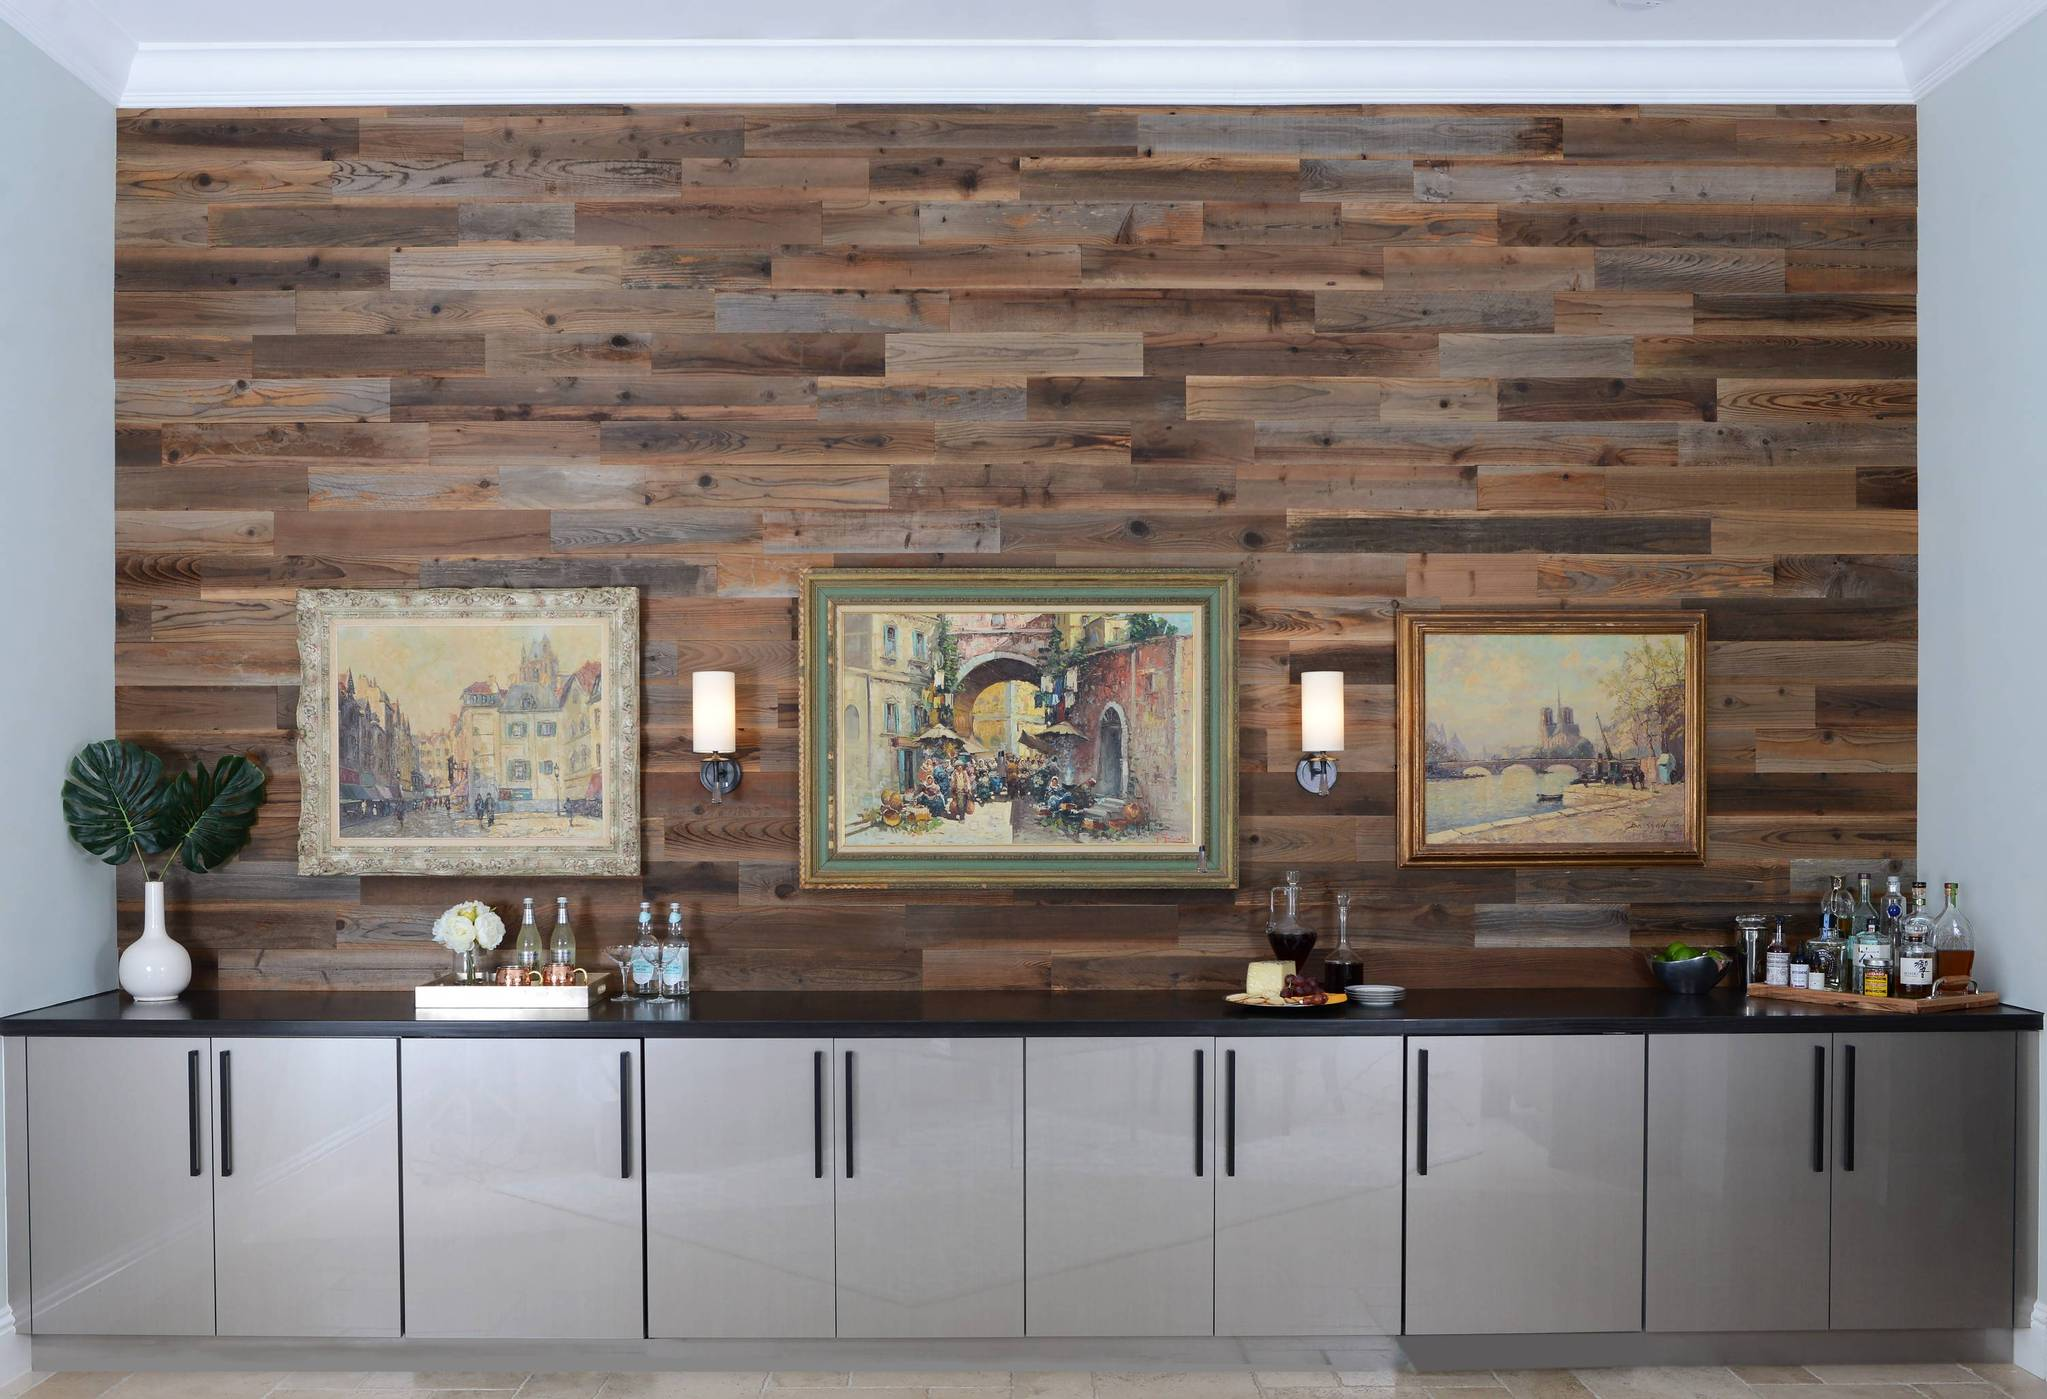 Classic rustic yet modern design by Stacy Miller Design that uses Stikwood peel and stick reclaimed redwood planks to compliment large artwork pieces.